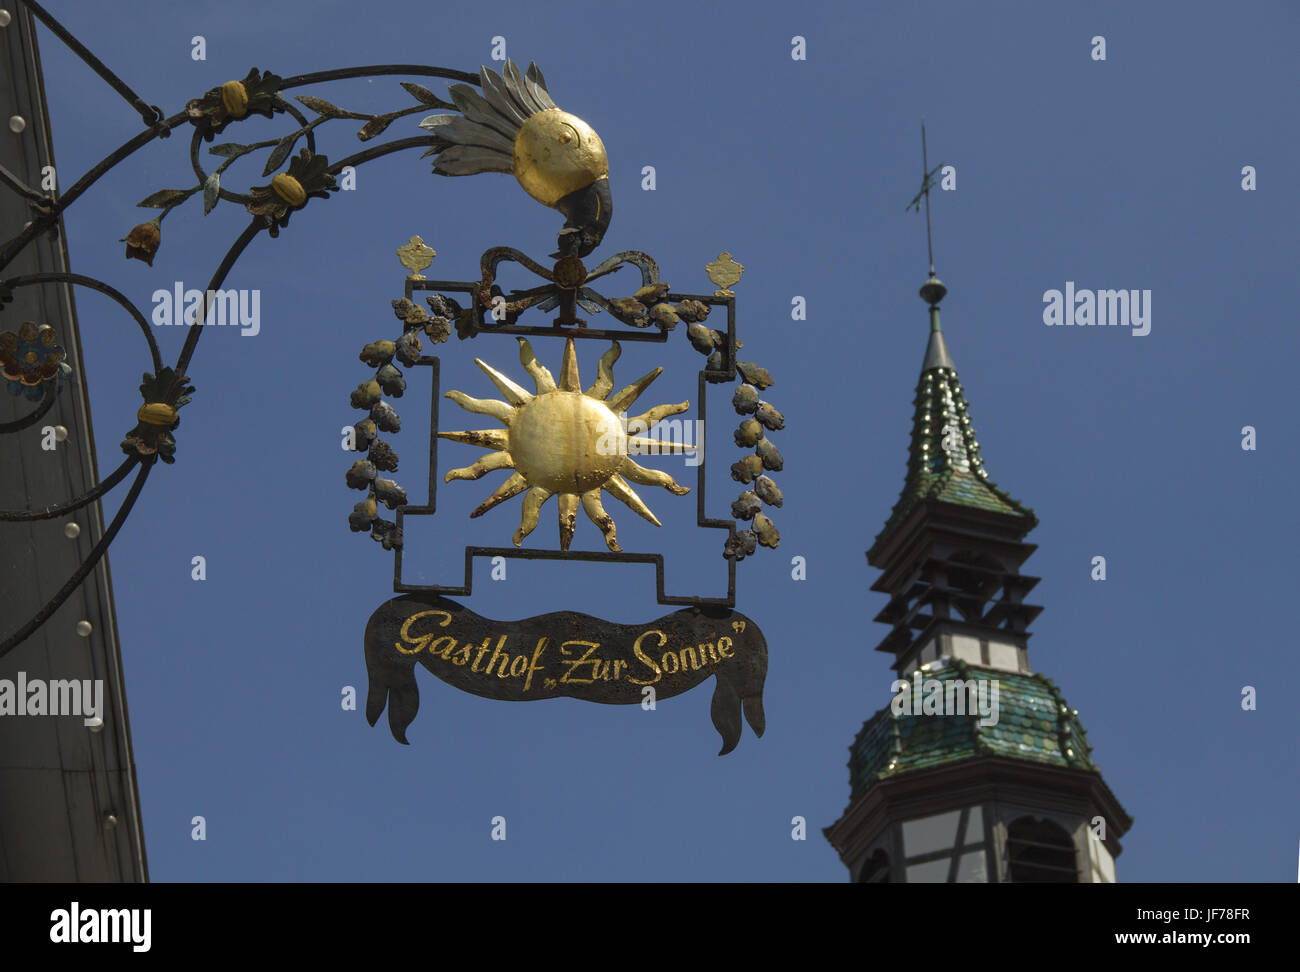 Inn sign in the city of Waiblingen, Germany Stock Photo